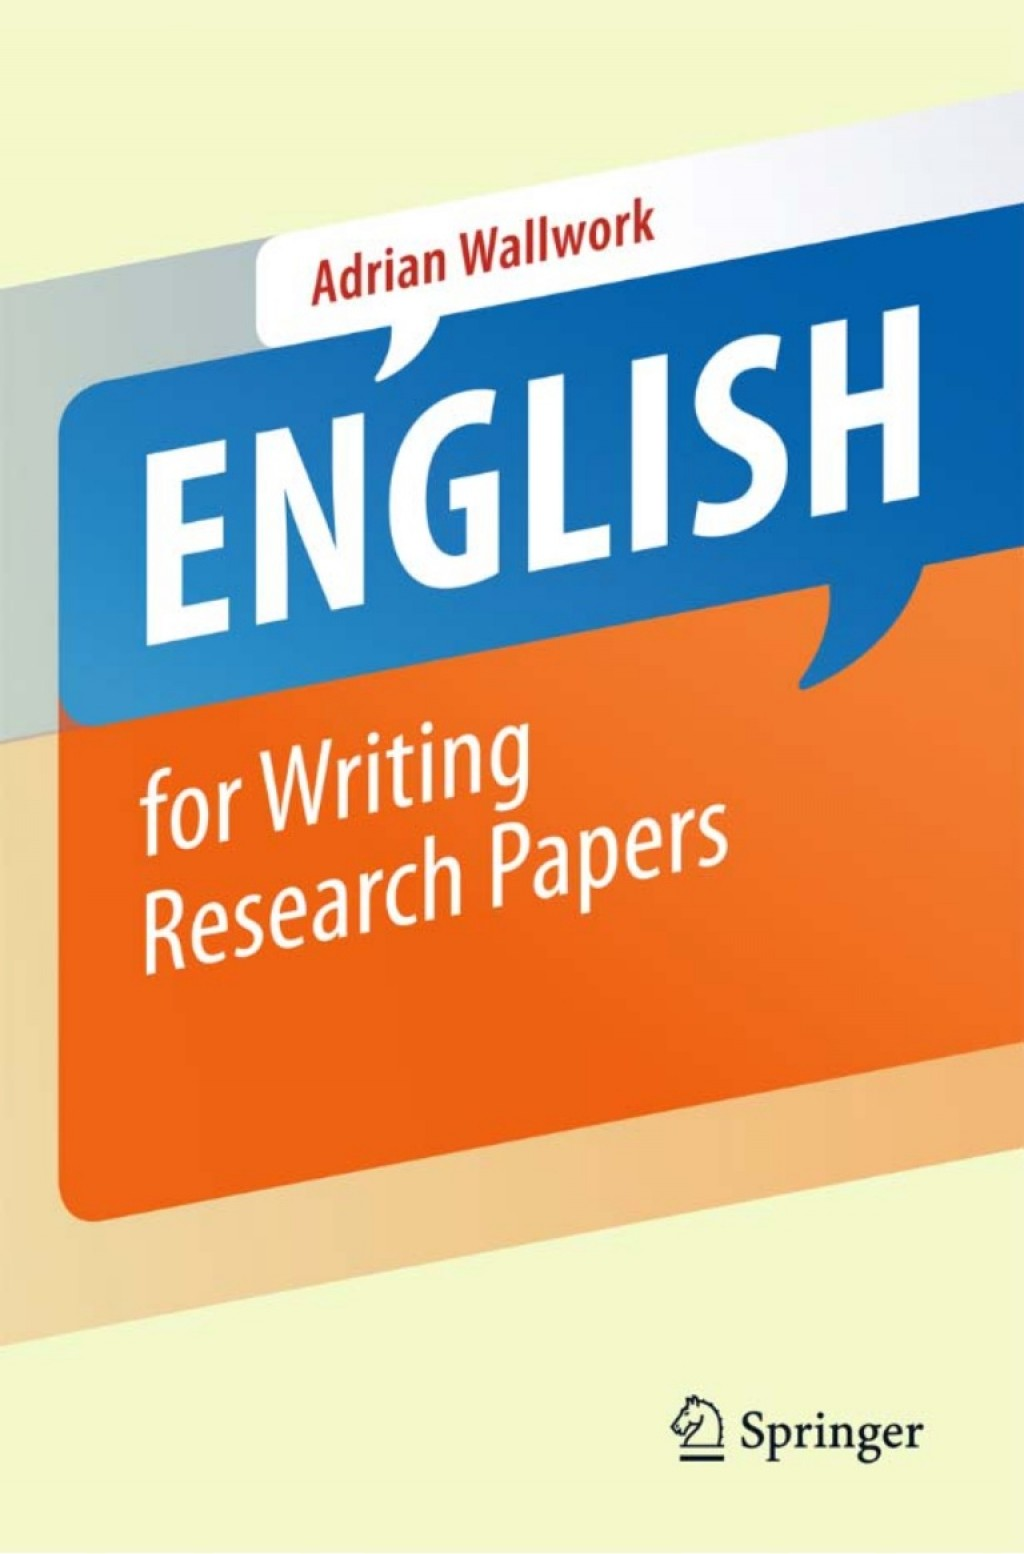 019 Englishforwritingresearchpapers Conversion Gate01 Thumbnail Writing Research Striking Paper Papers Across The Curriculum Pdf 15th Edition Lester Large